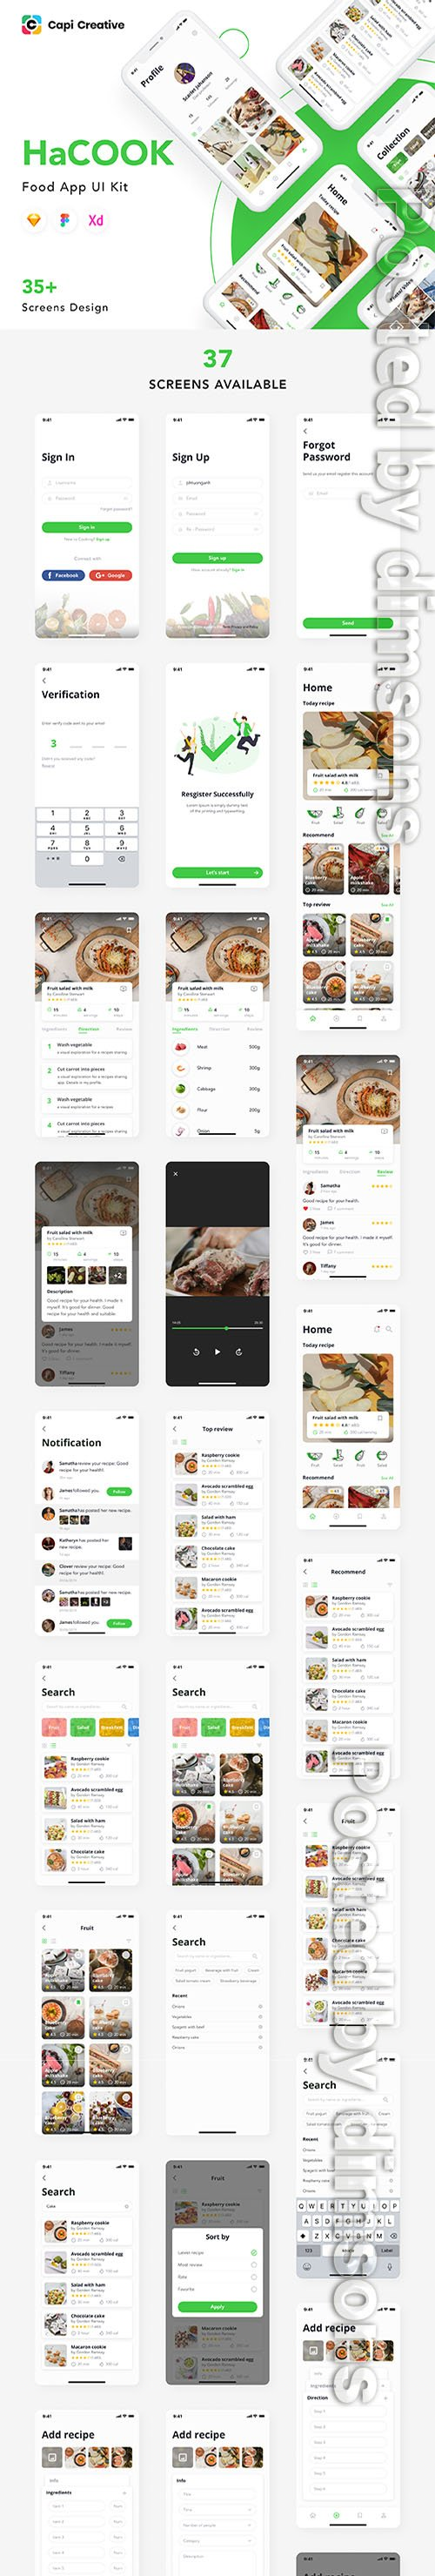 HaCook - Recipe Manager App UI Kit